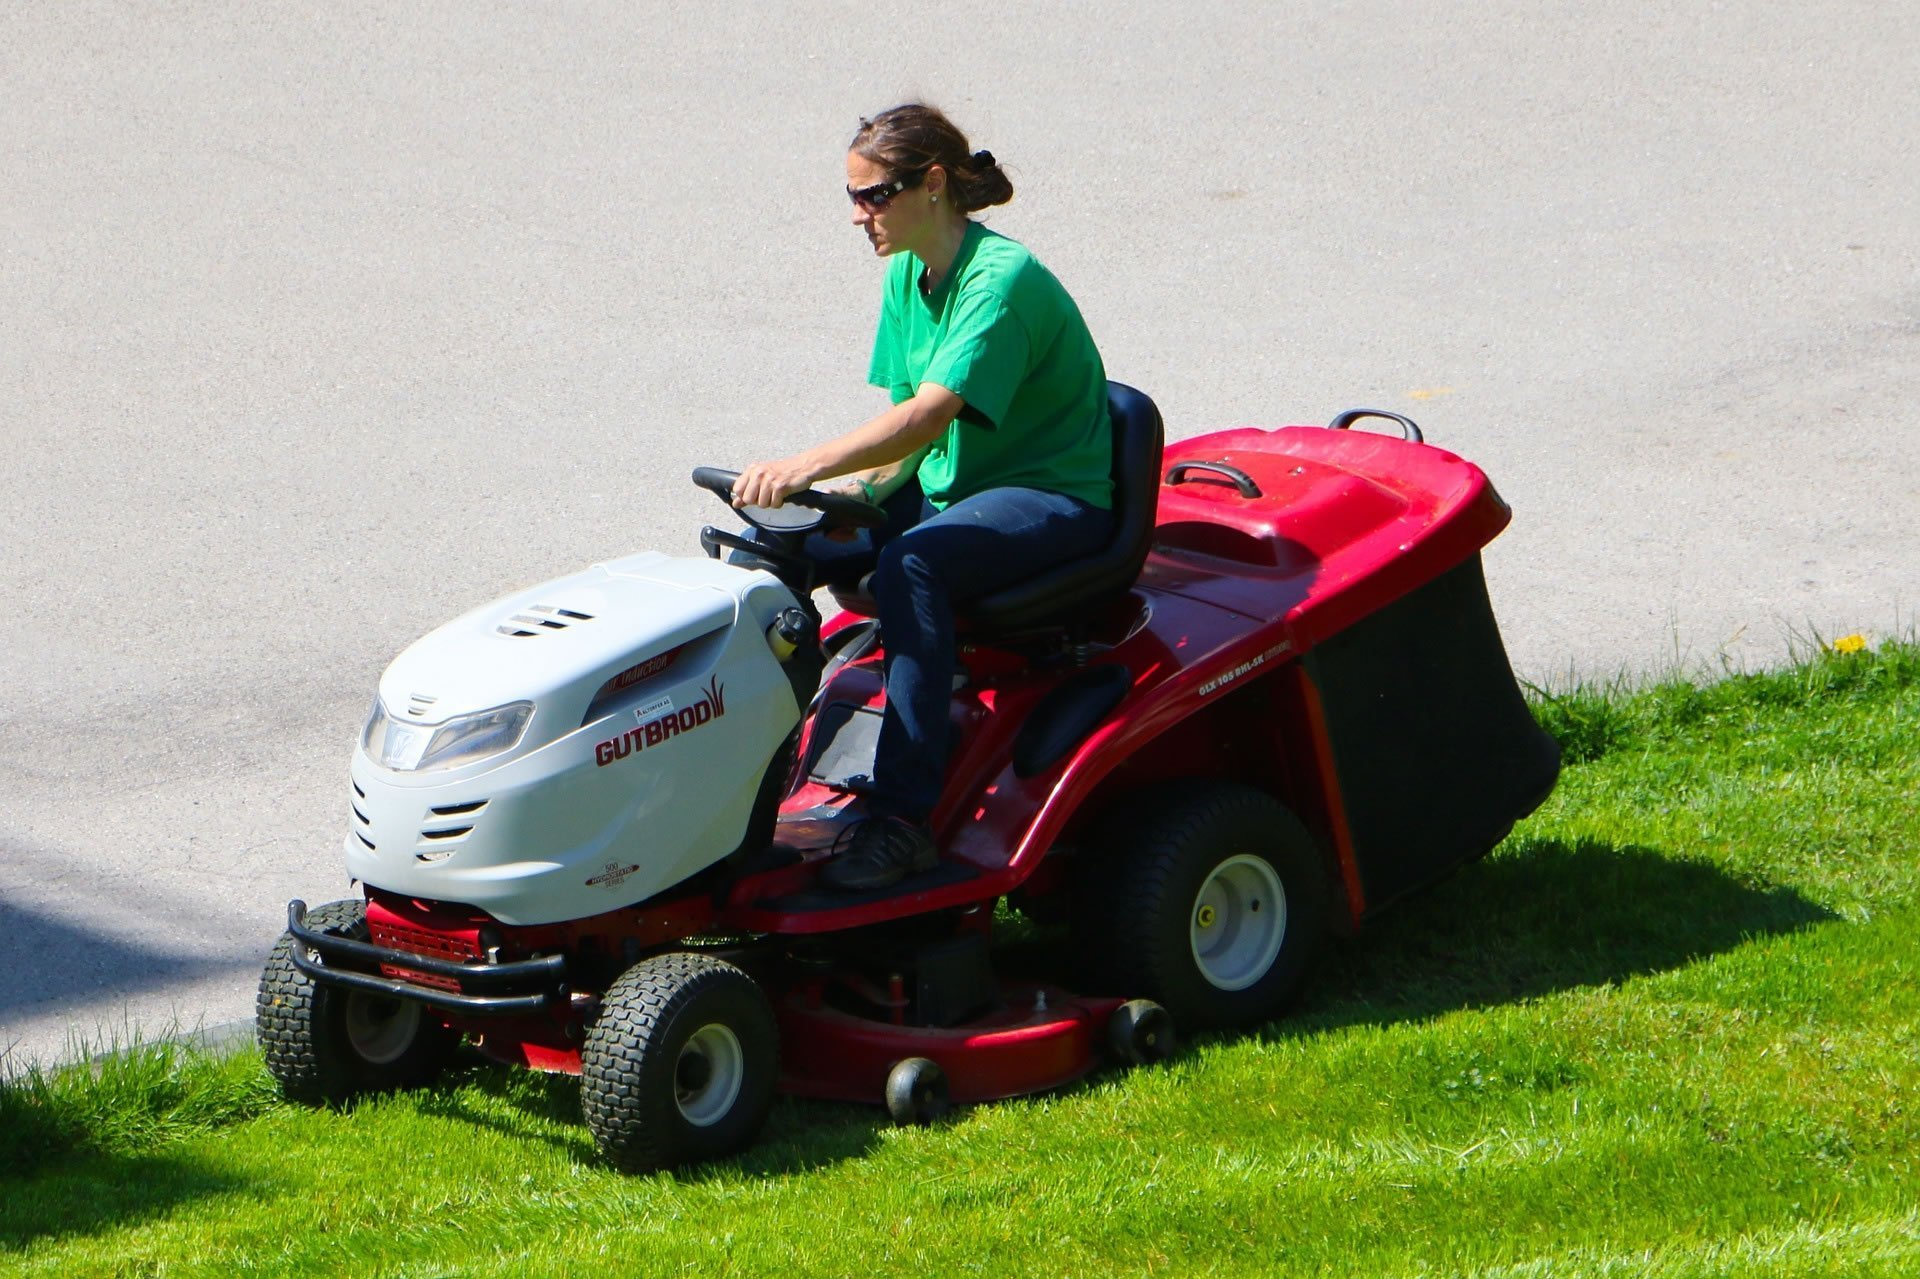 Best Riding Lawn Mowers Amp Tractor Reviews Amp Guide Lawn